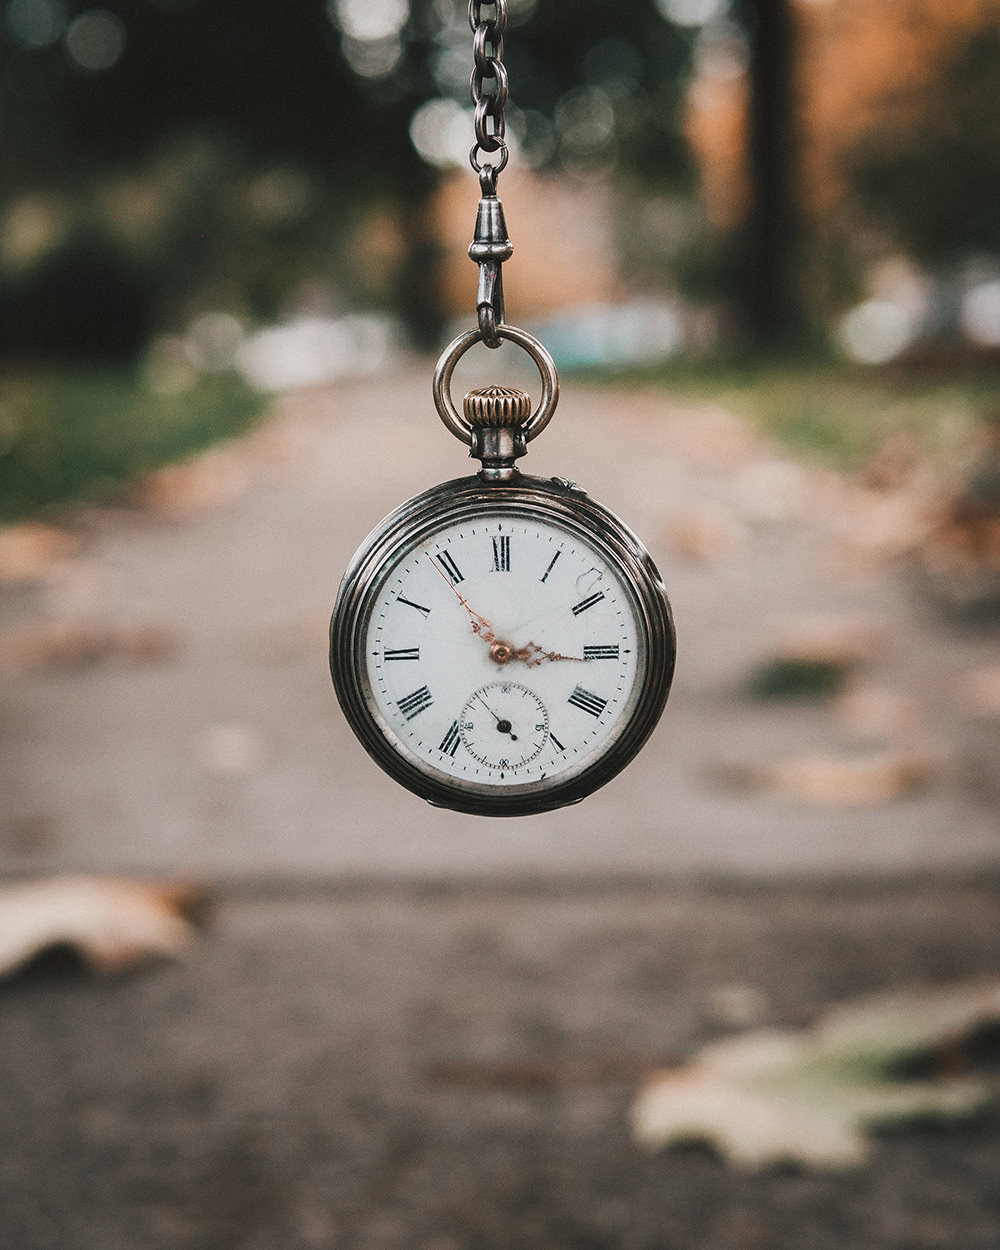 Don't be late! - Firstly because it causes further delays, secondly the team members might be potential people to hire you for future jobs, and you don't want to give a wrong impression!